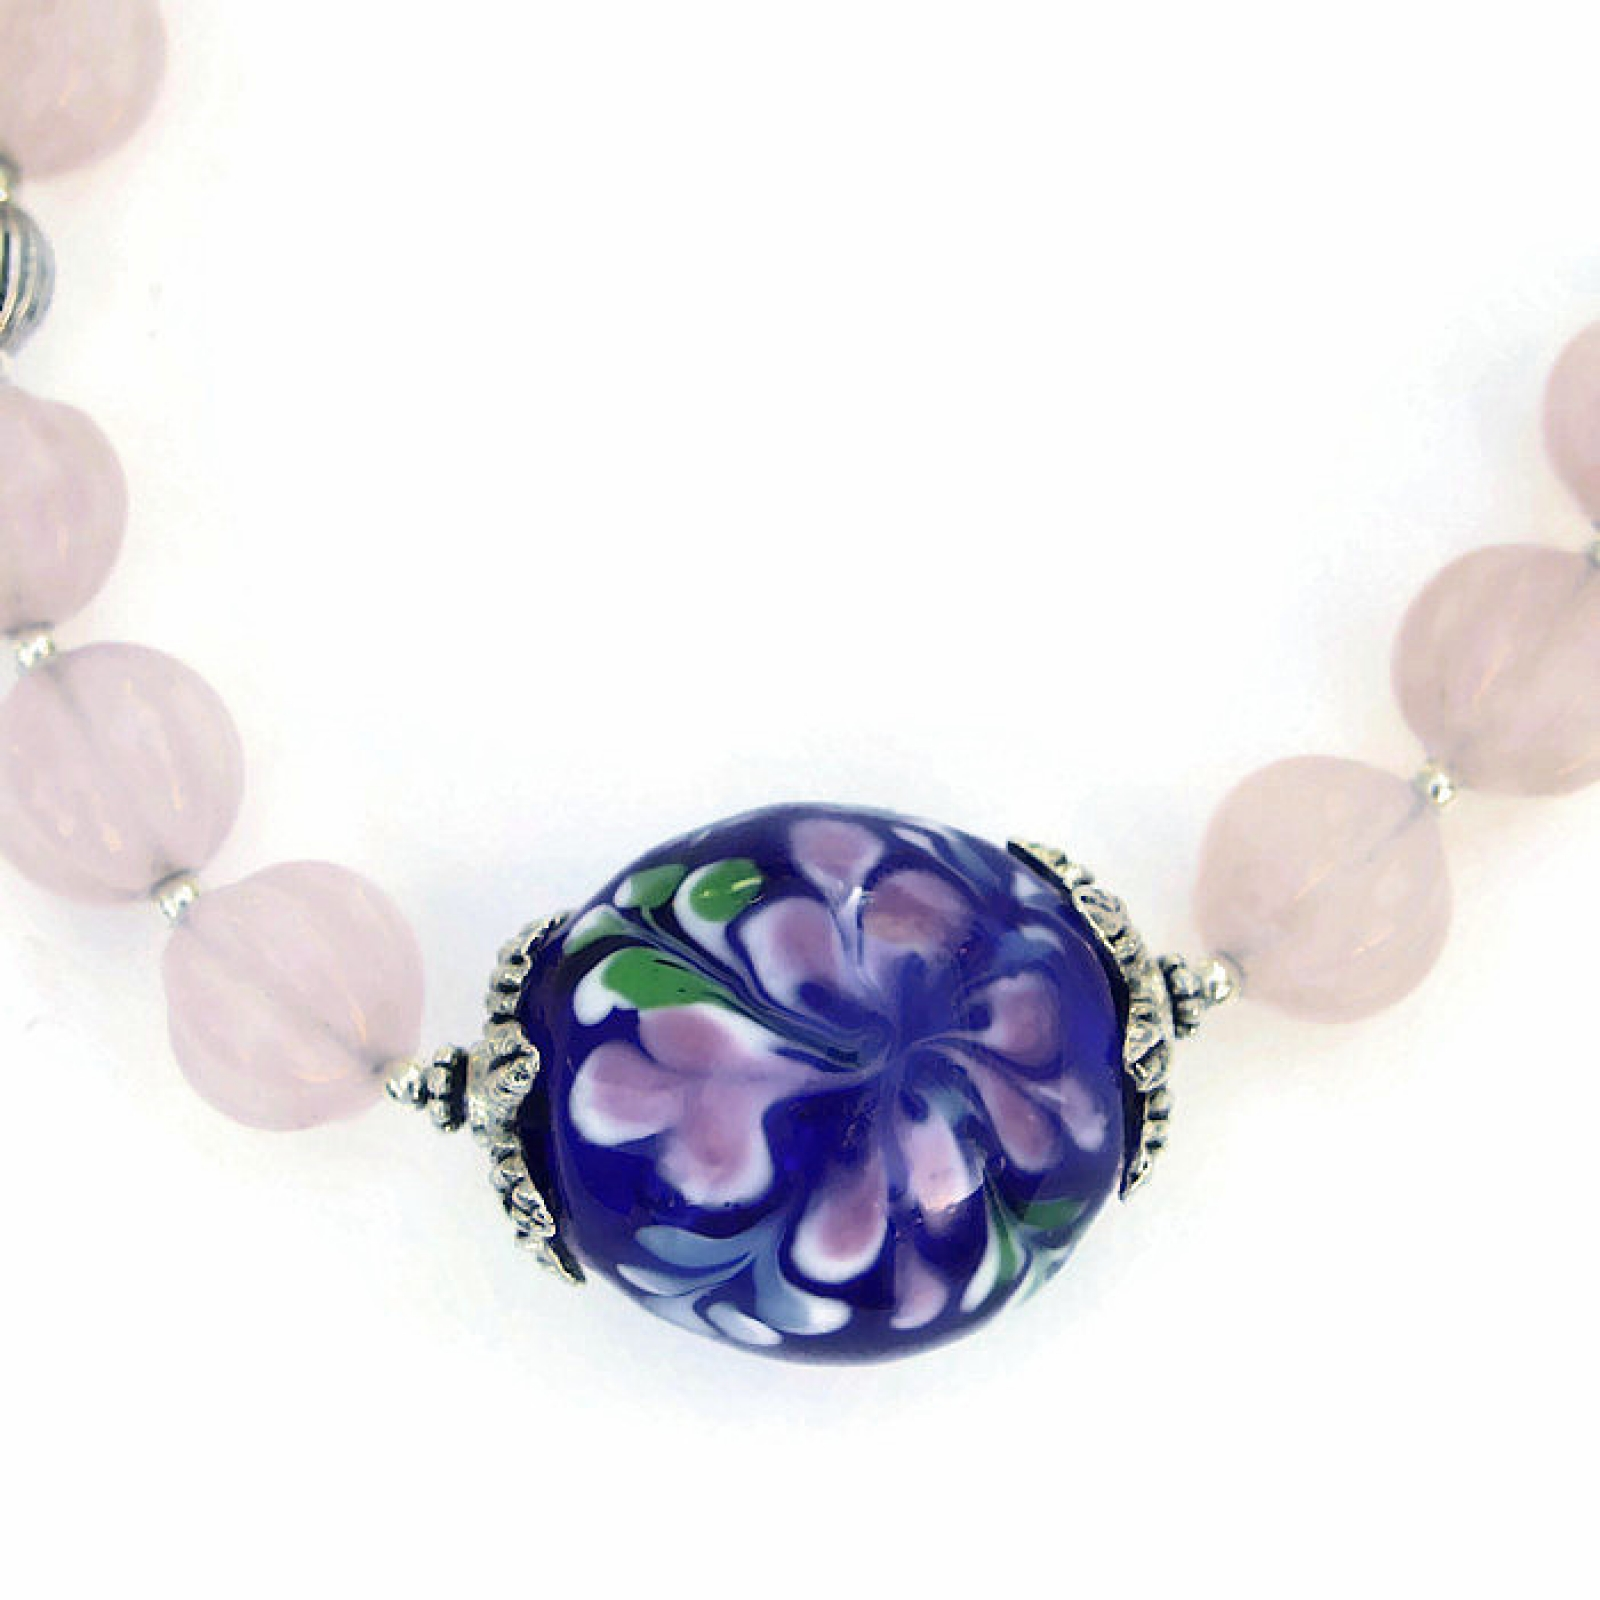 focal necklace explosion pink bead blue handmade flower artisan product gift and cobalt lampwork quartz jewelry rose